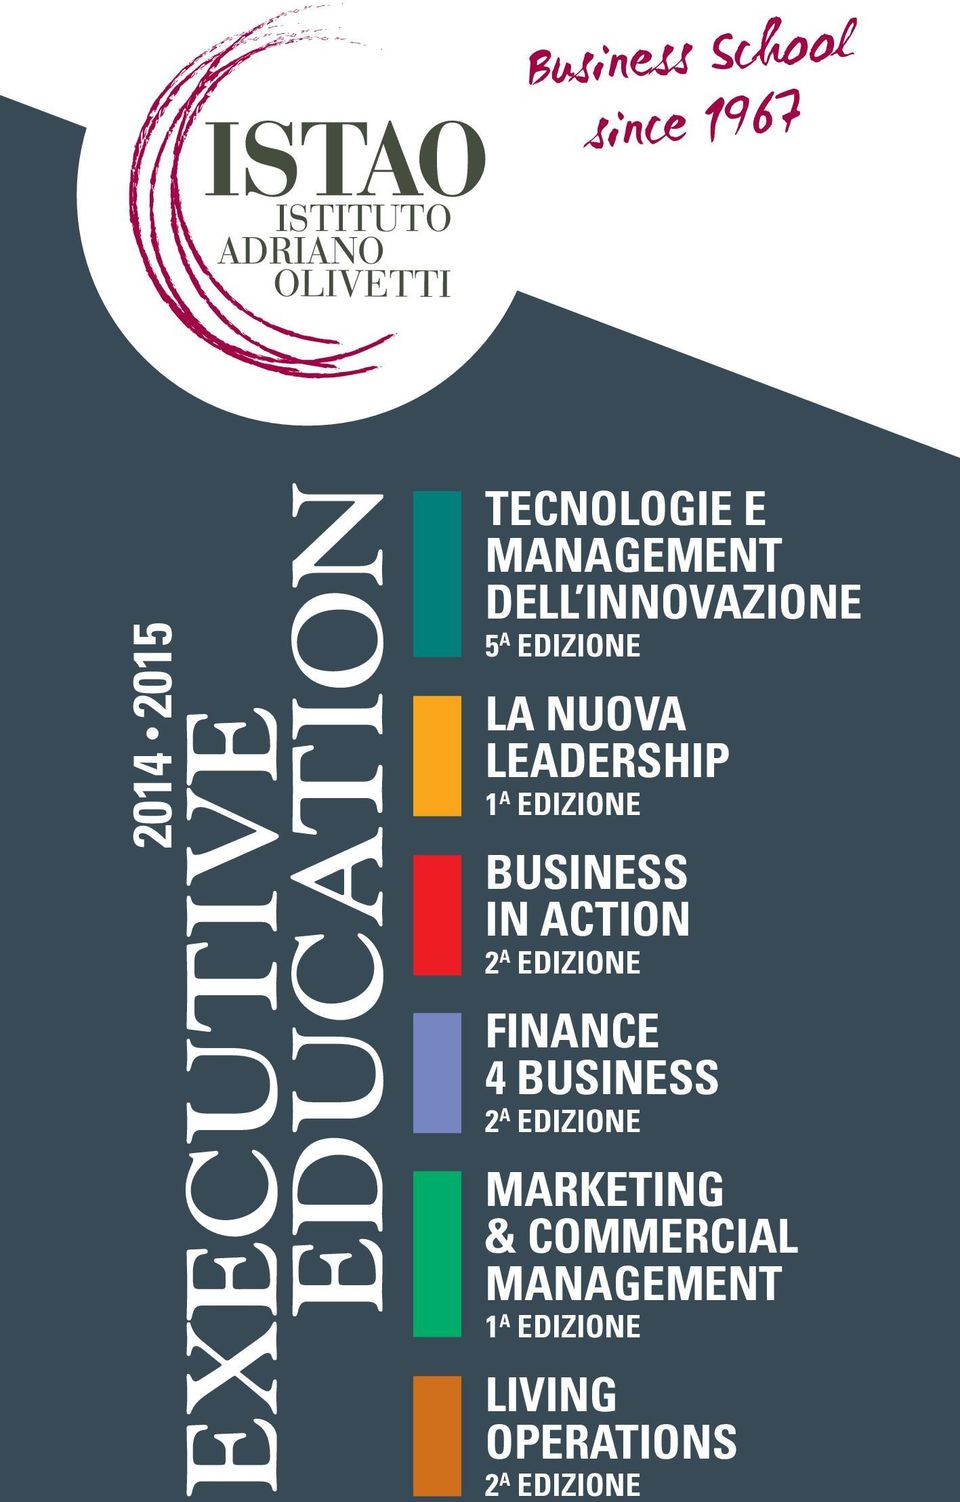 IN ACTION 2 a edizione FINANCE 4 BUSINESS 2 a edizione Marketing &